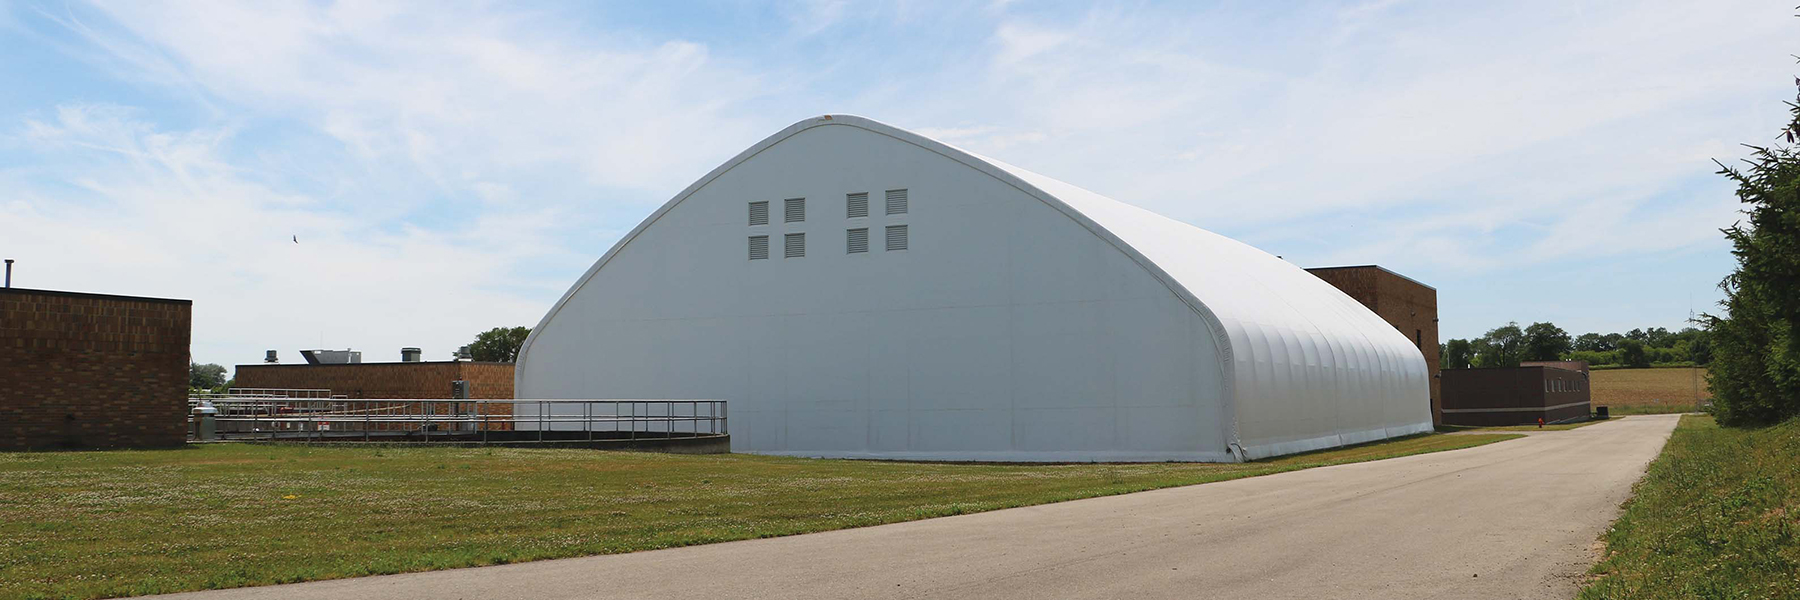 Waste and Recycling Plant - White Fabric Structure